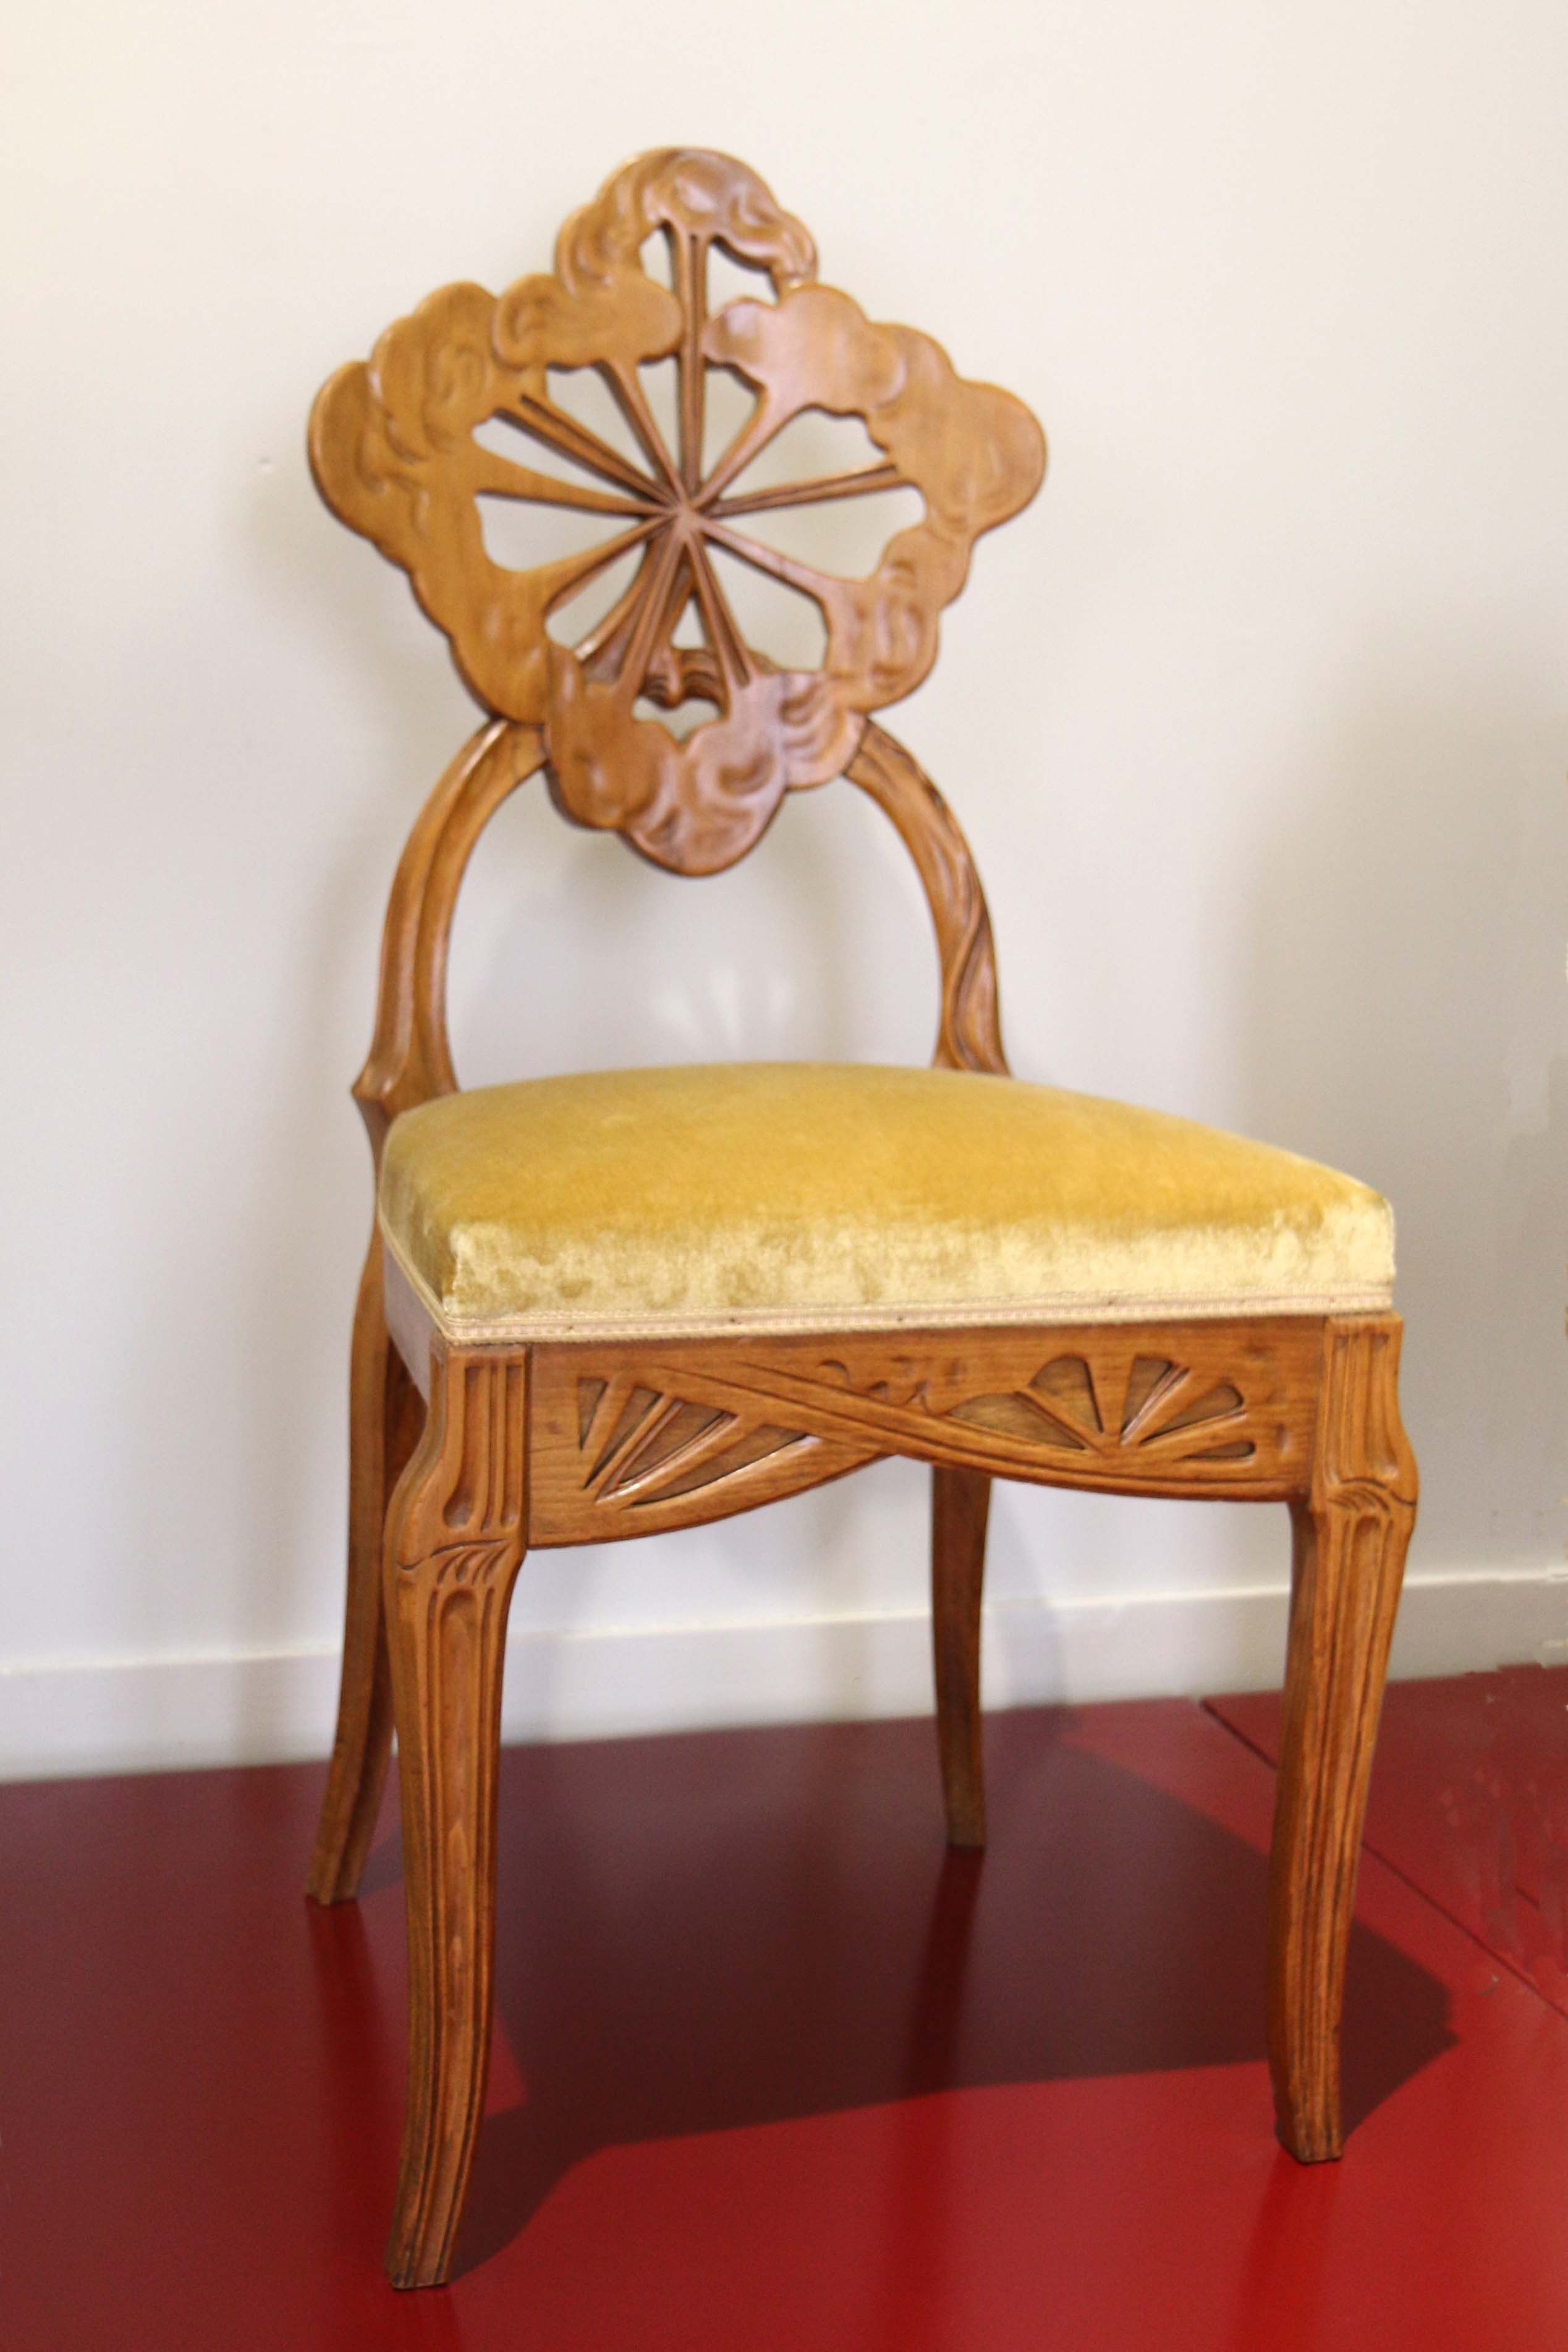 https://upload.wikimedia.org/wikipedia/commons/1/17/Bor%C3%A9ly-art_nouveau-Gall%C3%A9-chaise.jpg